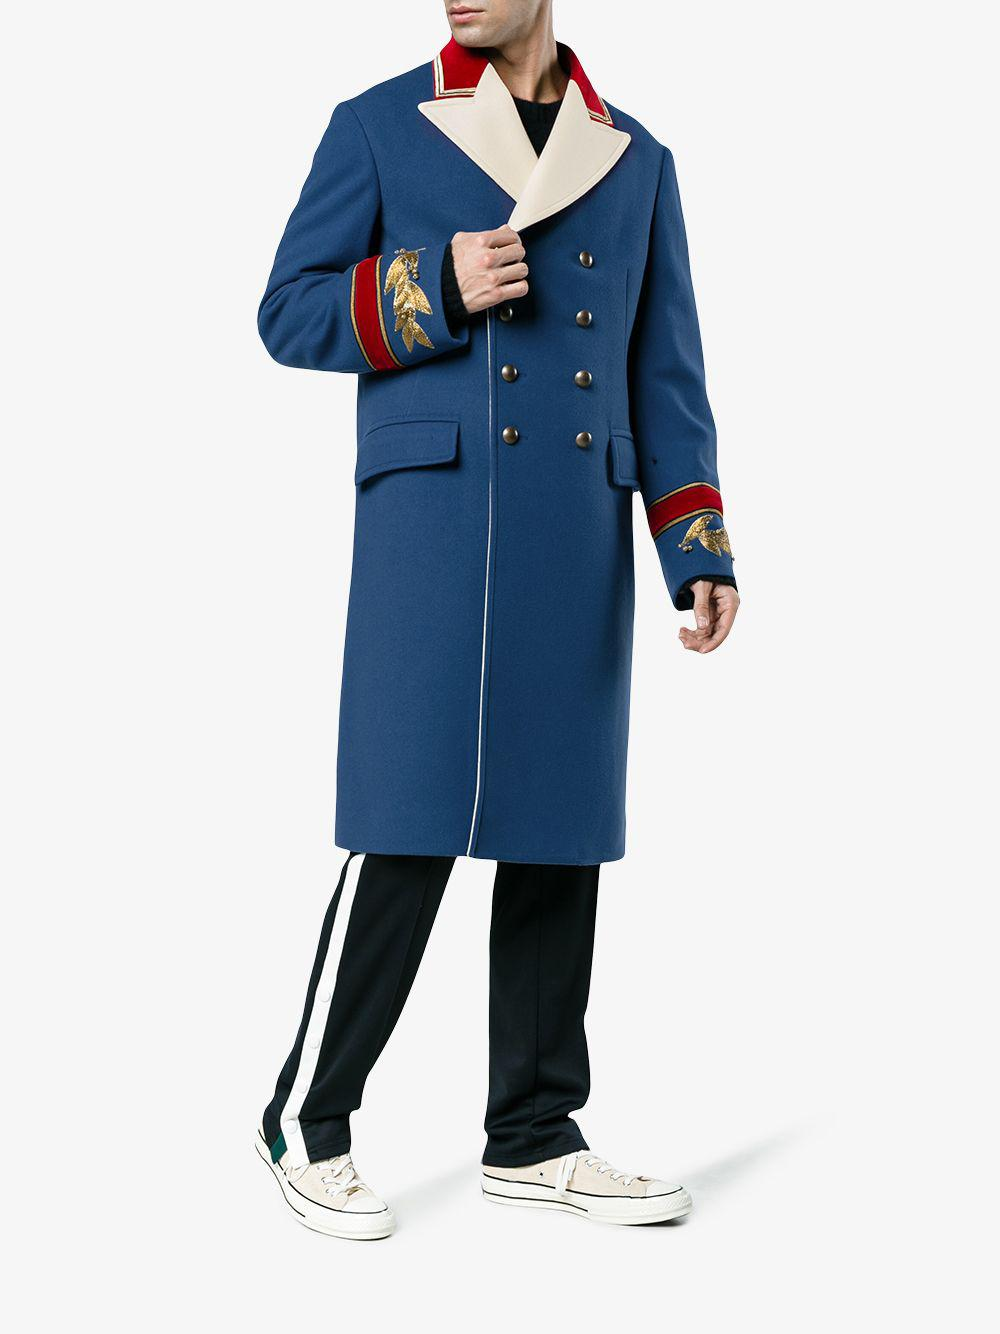 5c344bccb3e4 Lyst - Gucci Wool Cashmere Coat in Blue for Men